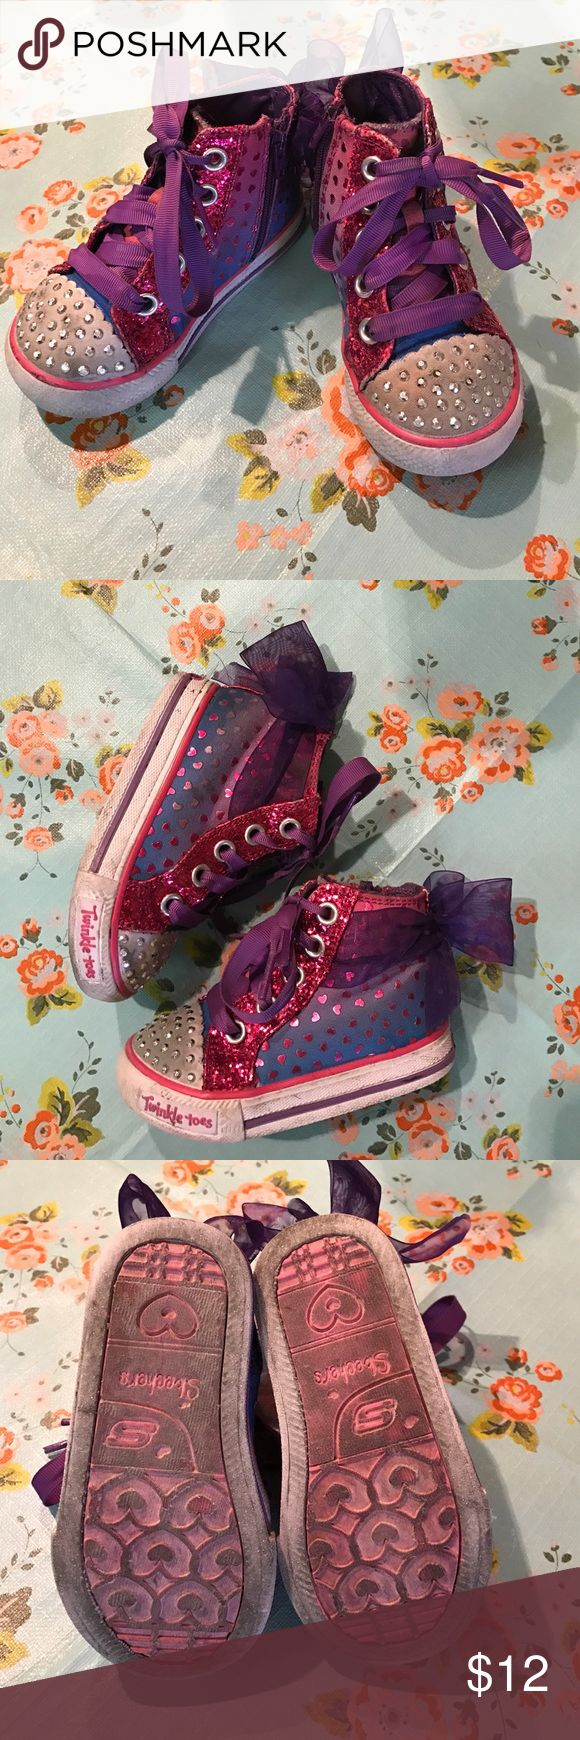 Skechers Twinkle Toes Cute shoes. Show signs of wear, but the zippers and laces and lights are still in good condition. Great for the kid hat outgrows their shoes in a few months, like most toddlers do! Skechers Shoes Sneakers